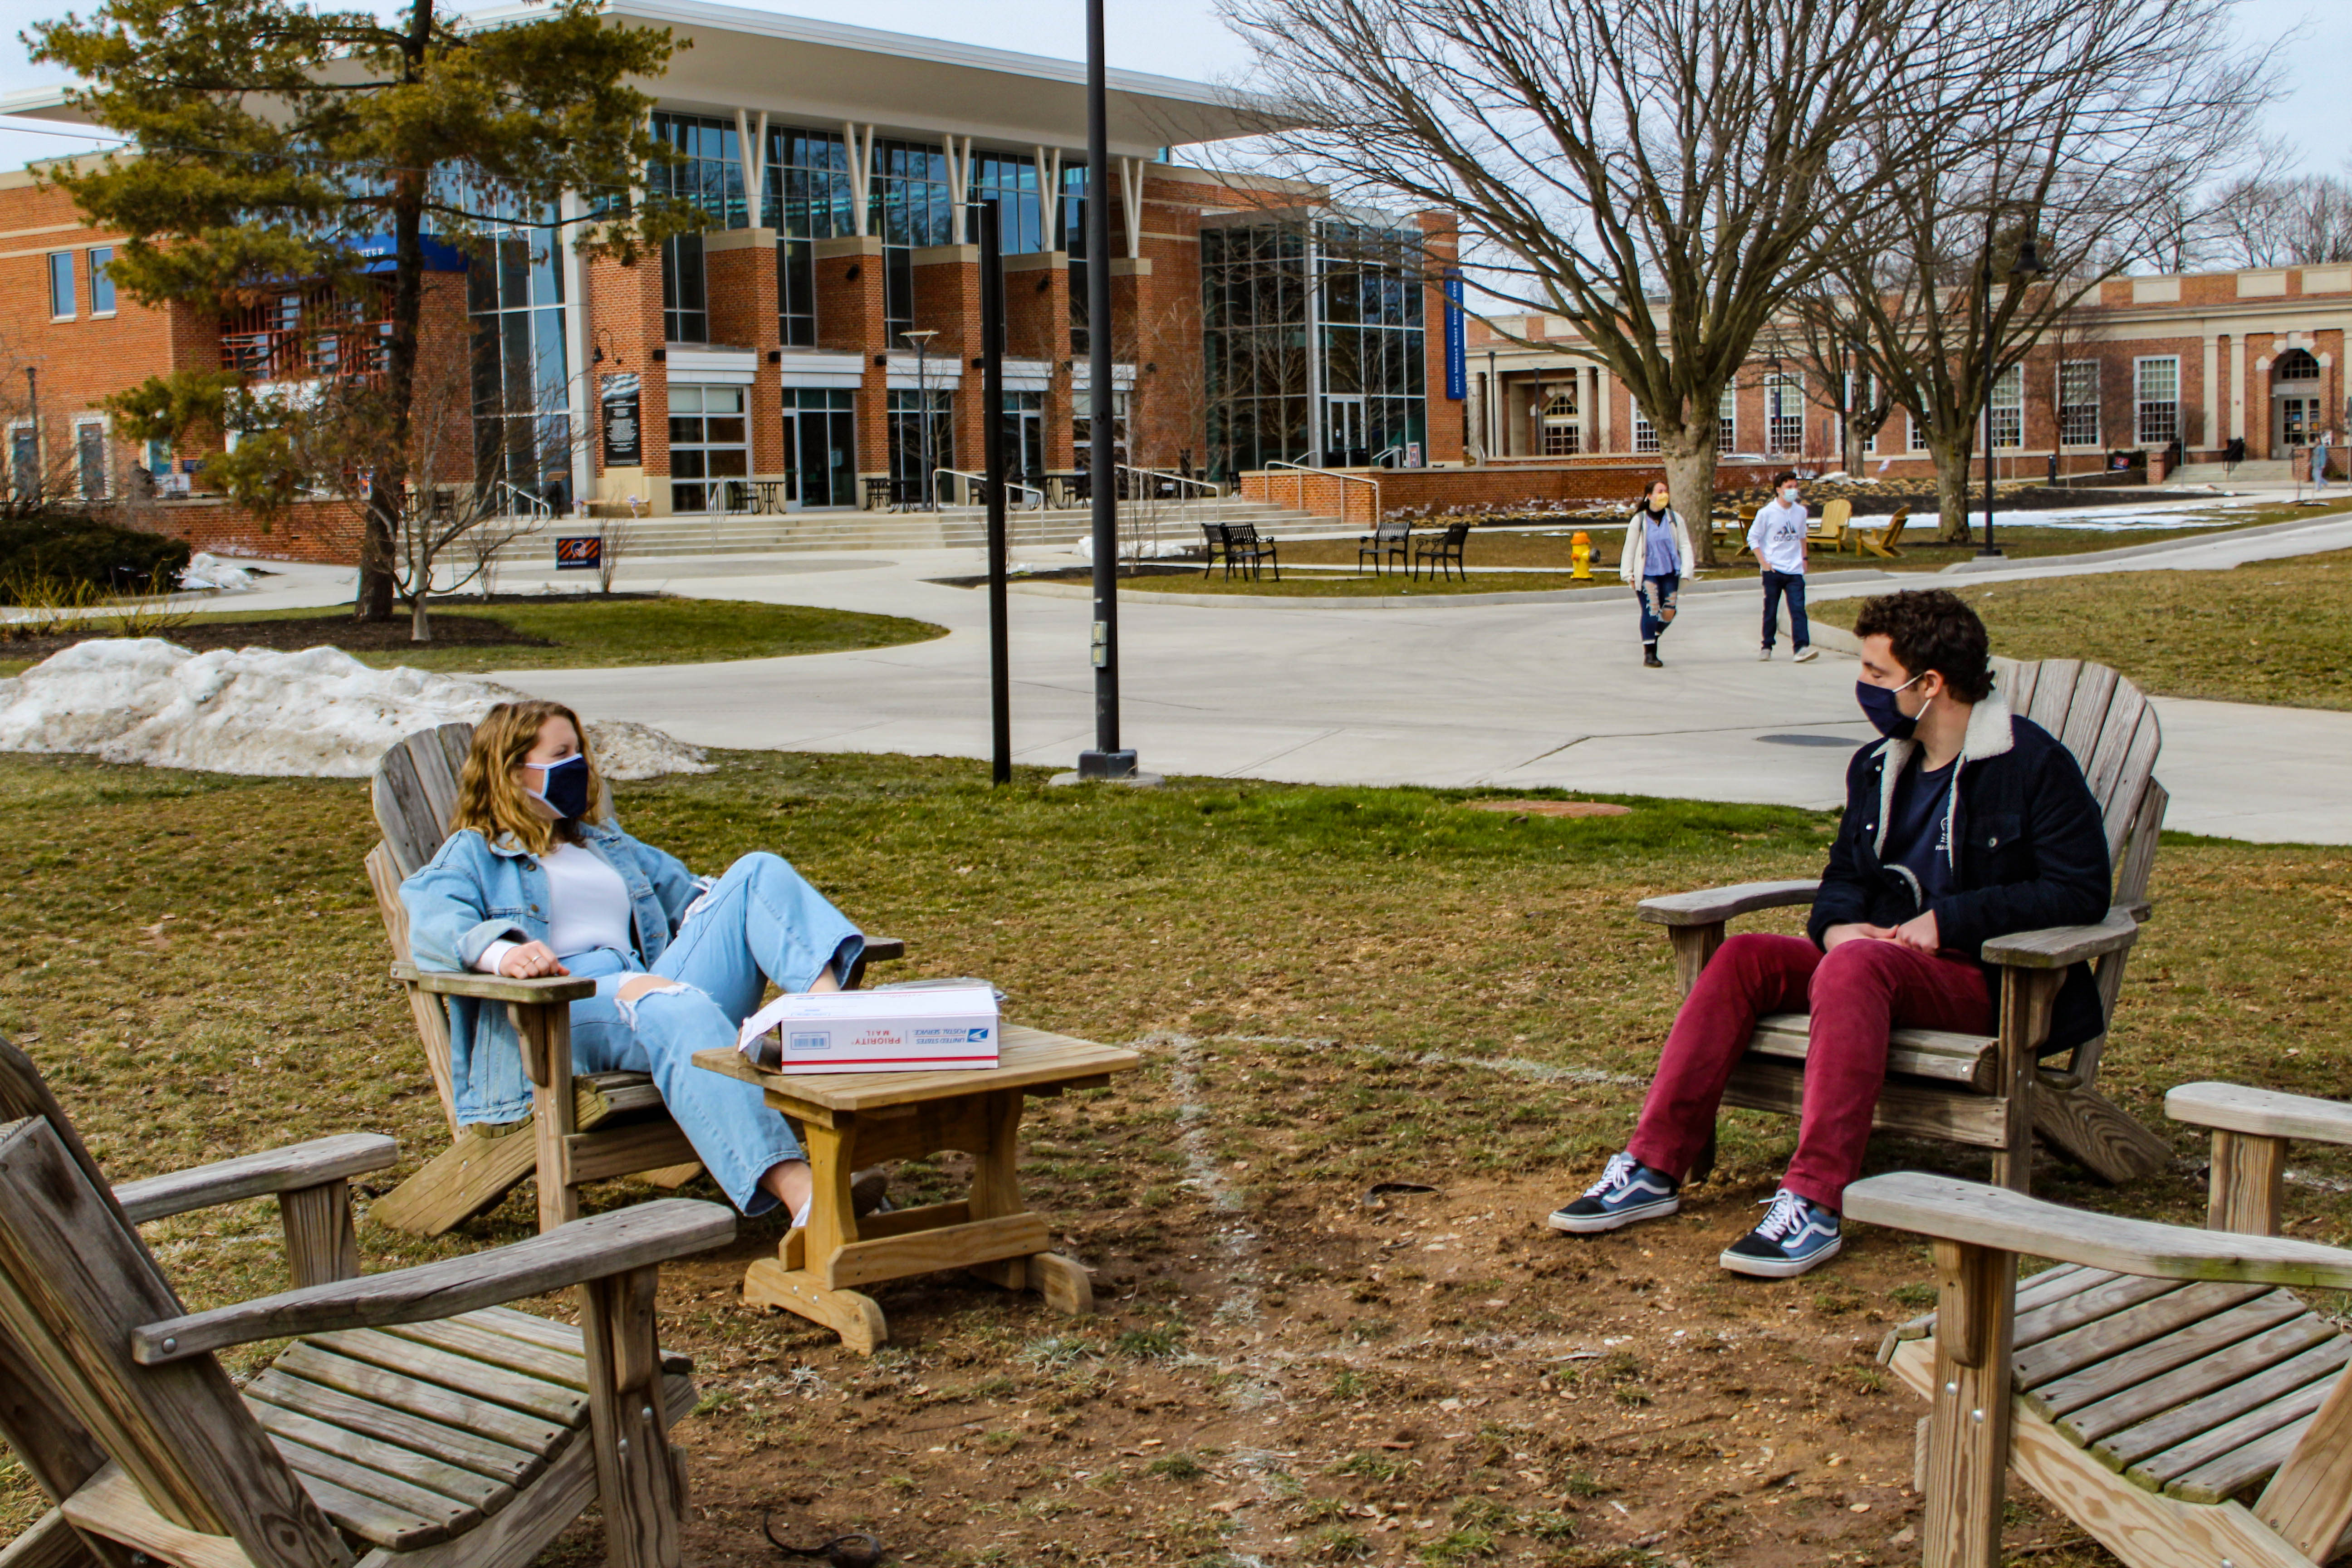 Rachel Wert '21 and Timothy Wilson '21 lounge in adirondack chairs on Stine Lake. In order to enforce social distance rules, the chairs are situated six feet apart from each other. (Photo Mary Frasier/The Gettysburgian)